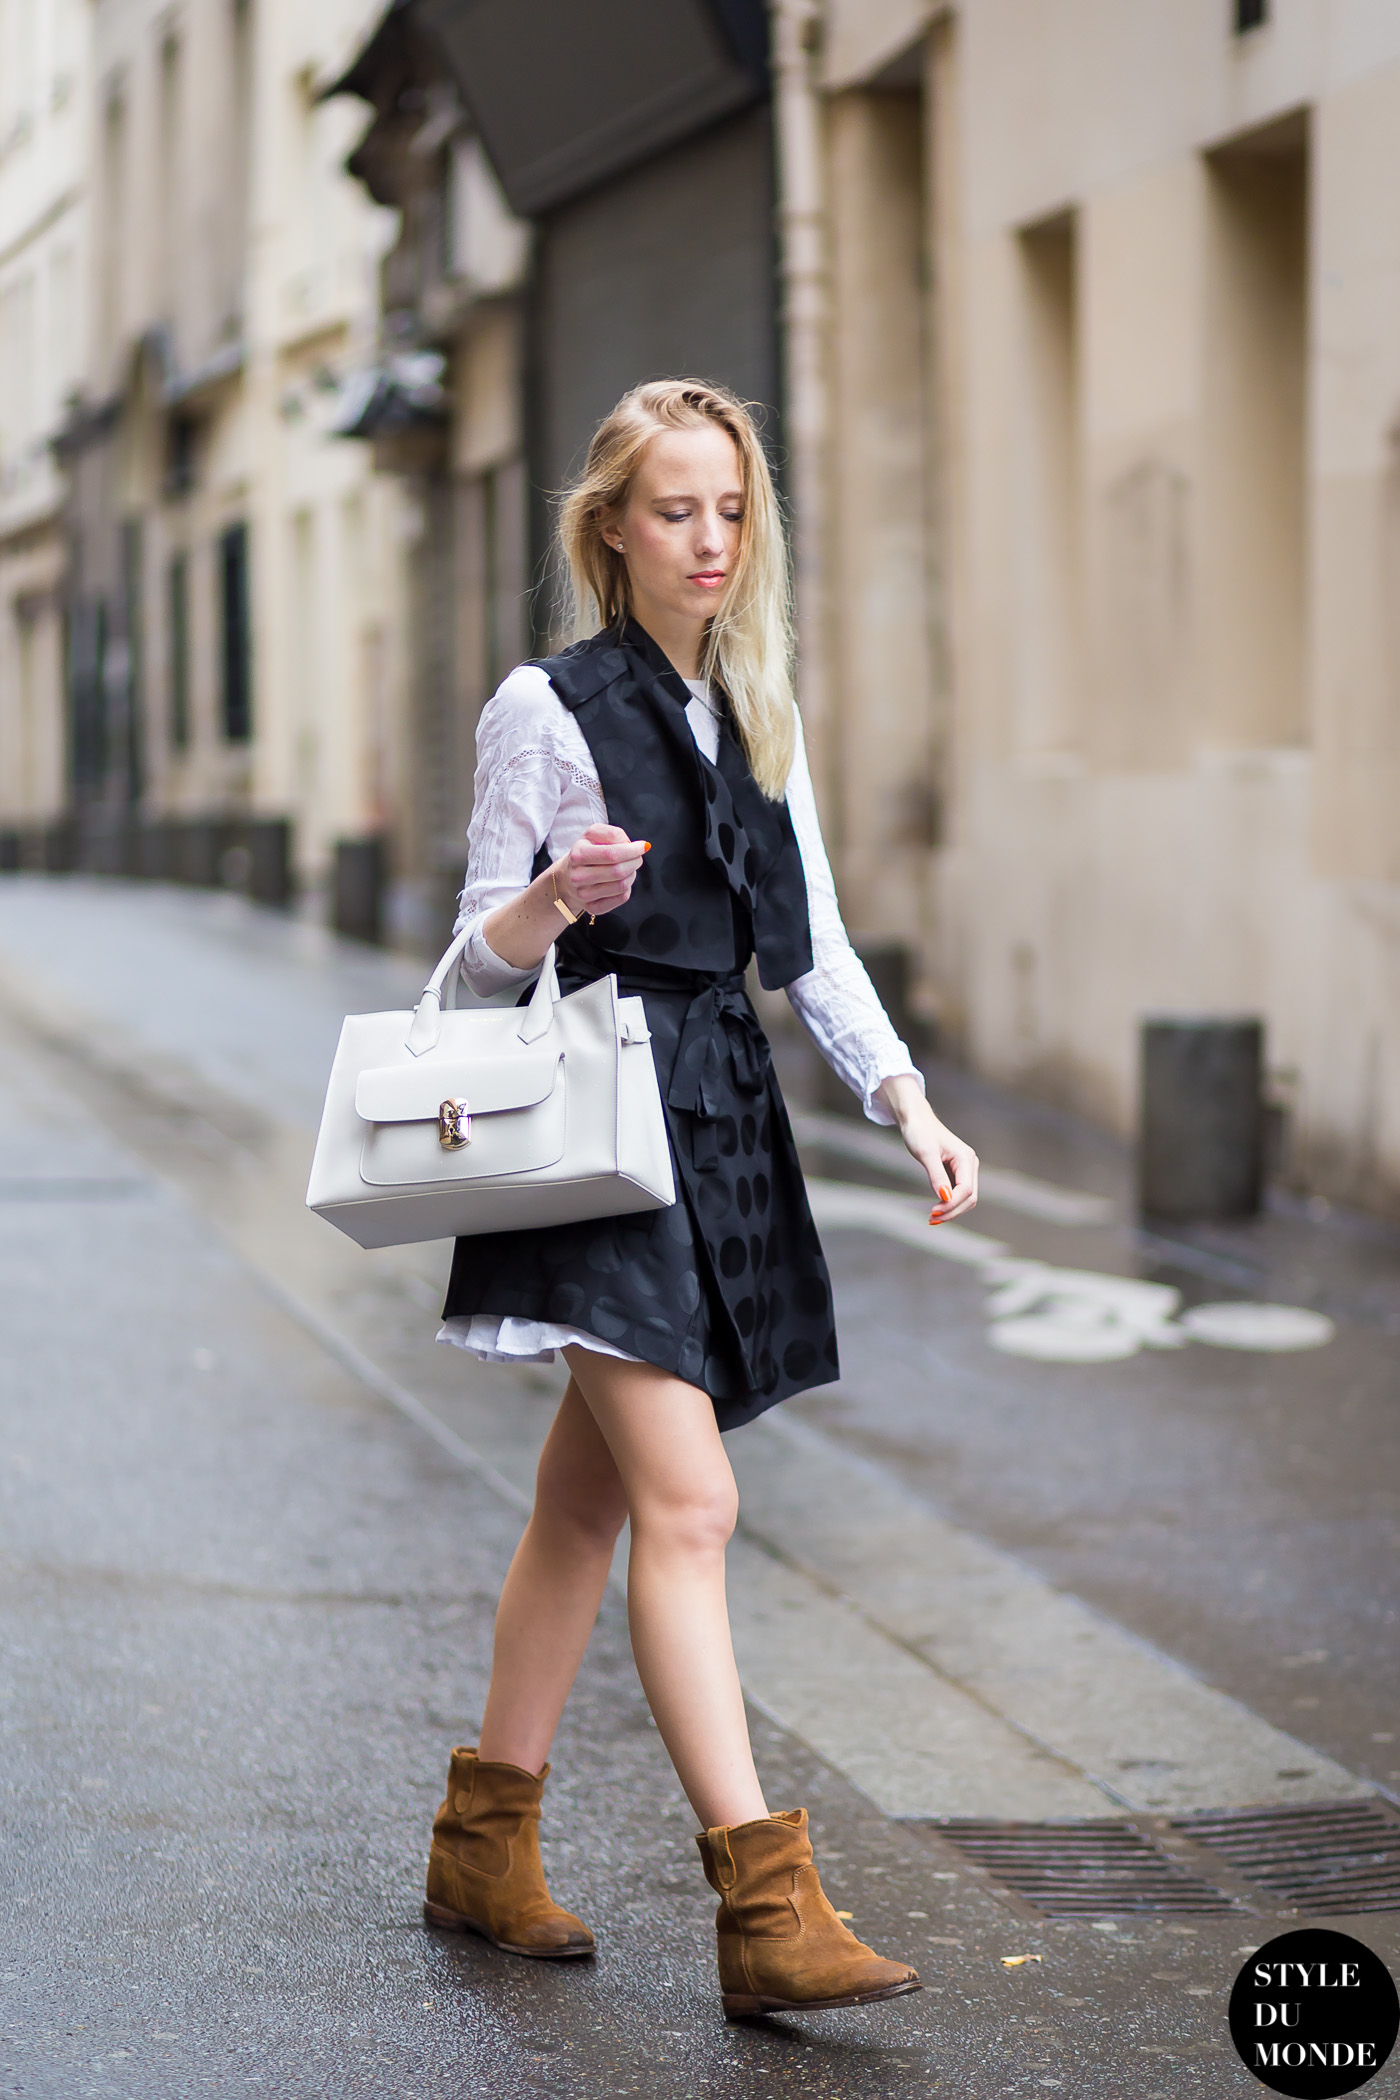 Paris Men 39 S Fashion Week Spring 2015 Street Style Alice Zielasko Style Du Monde Street